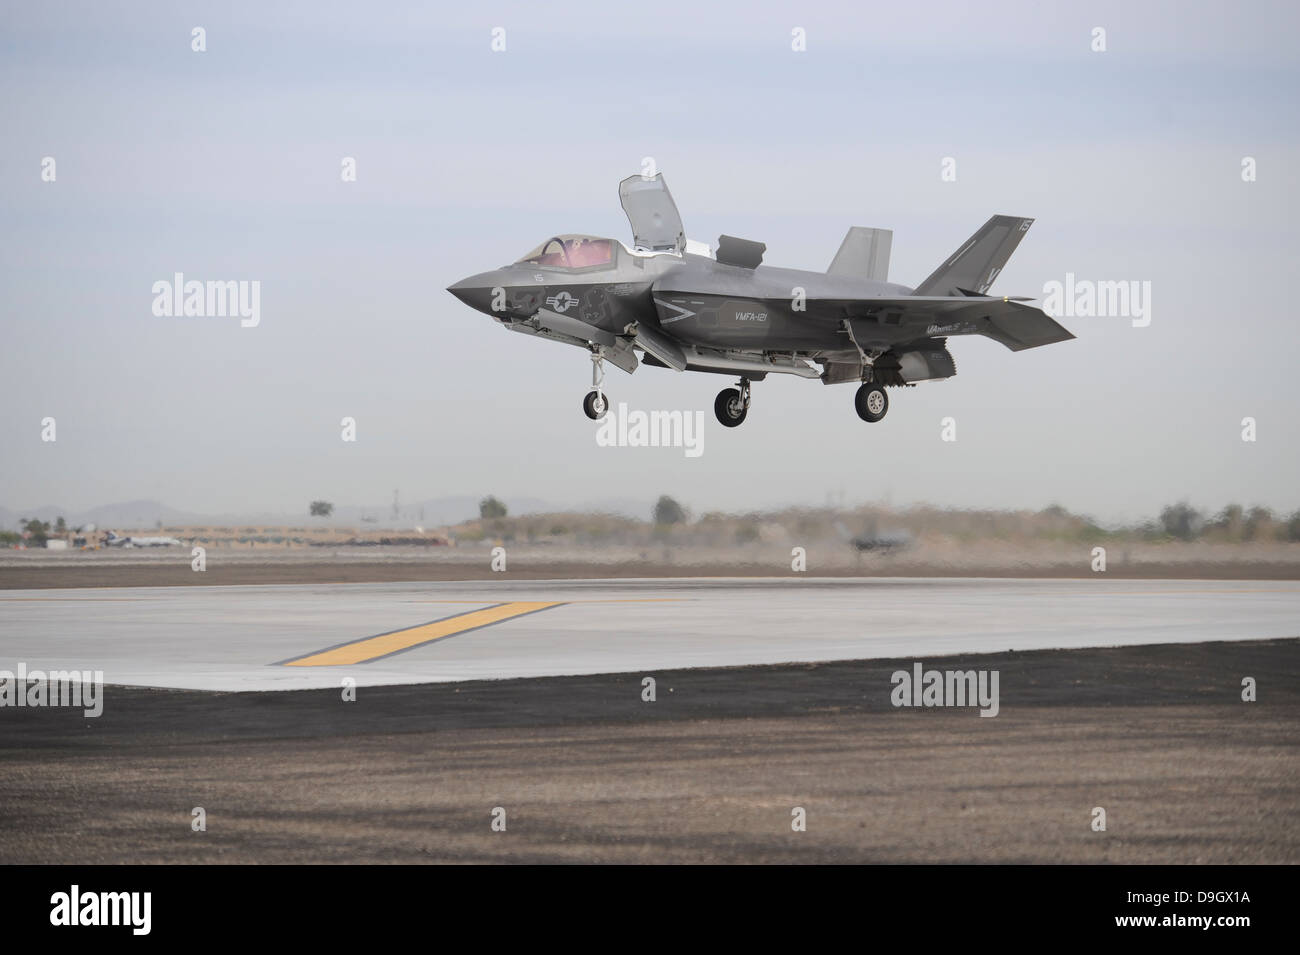 An F-35B Lightning II Joint Strike Fighter prepares to make a vertical landing. - Stock Image